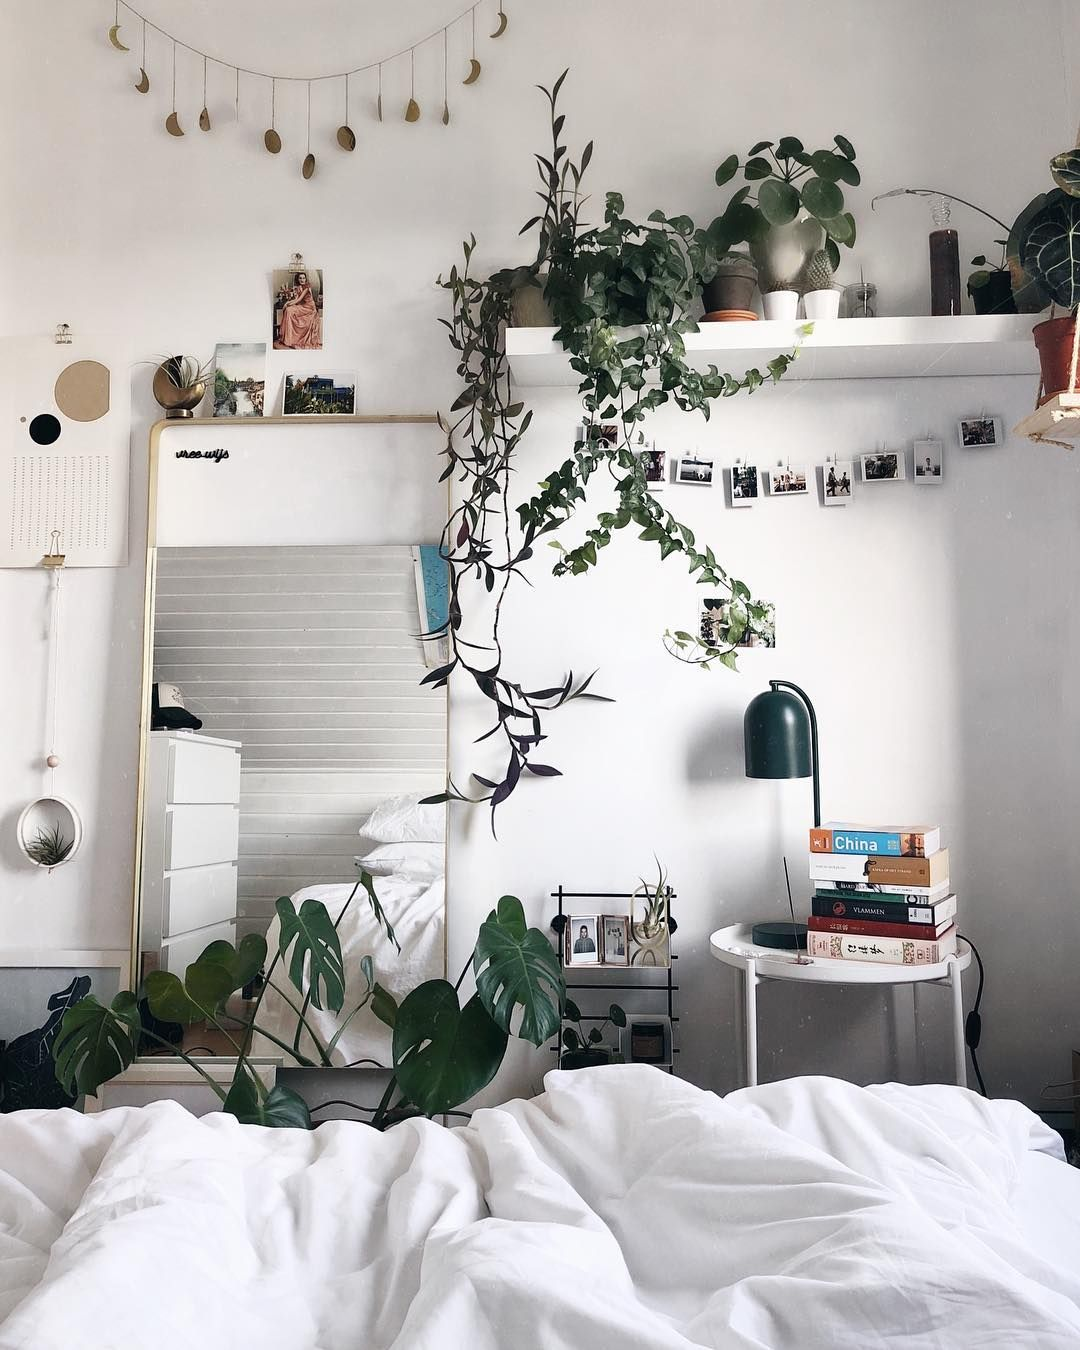 Nelson Nelplant On Instagram Room Decor Bedroom Aesthetic